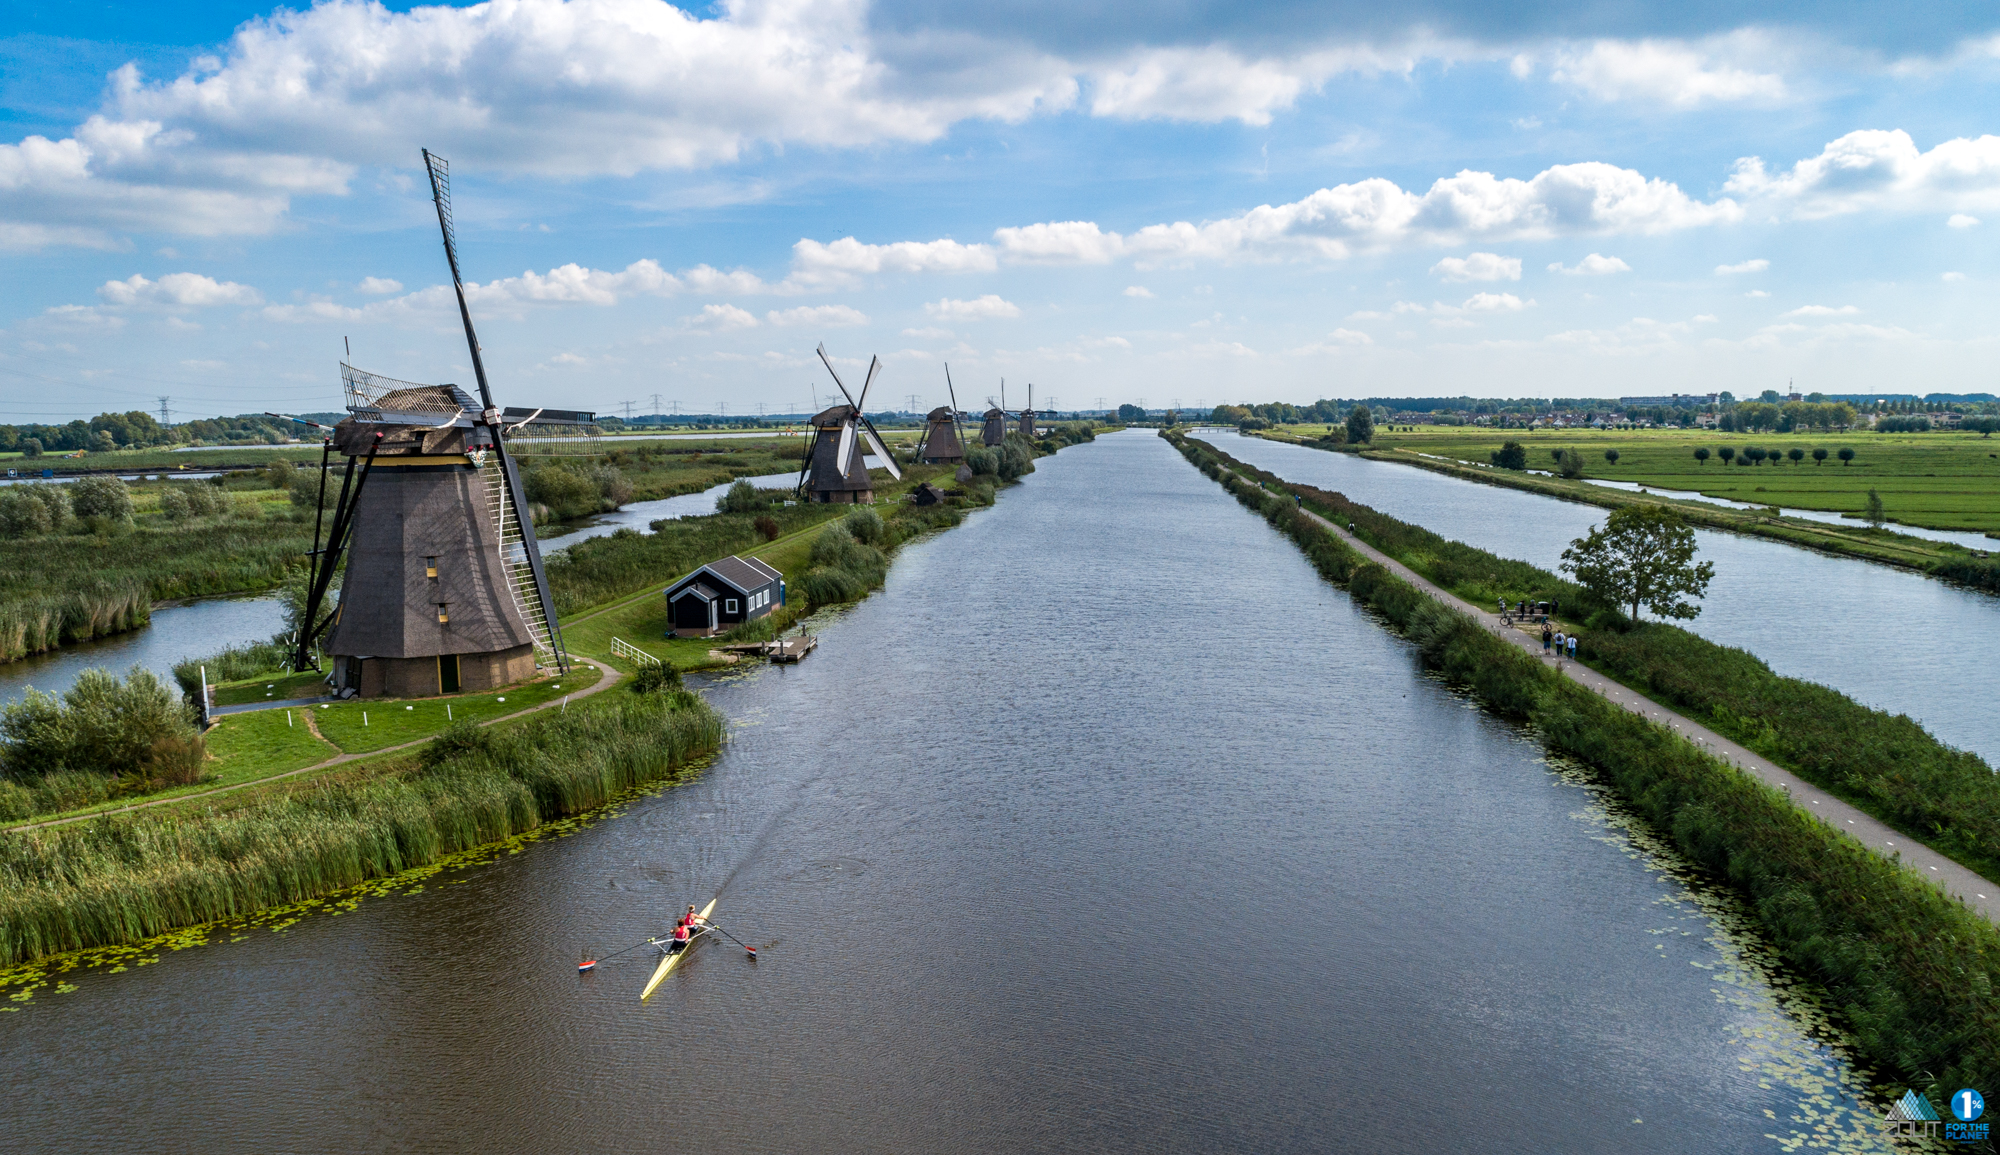 Lisa Goossens Roeien kinderdijk watersport fotografie